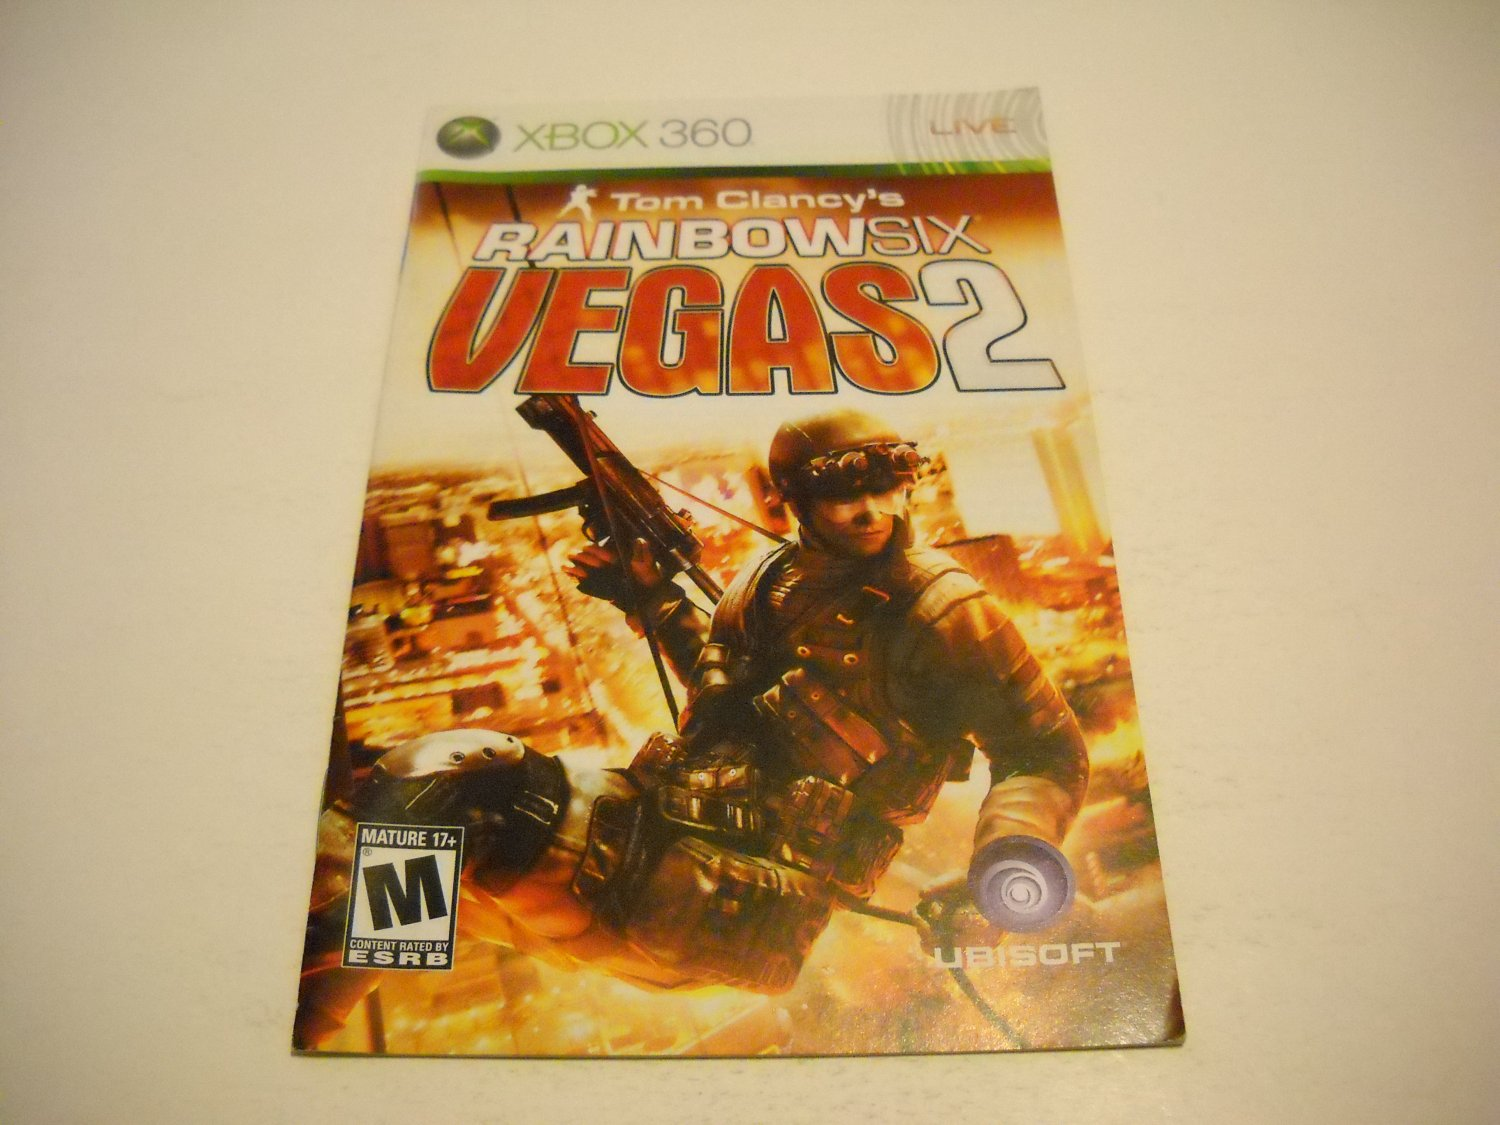 Manual ONLY ~  for Tom Clancy's Rainbow Six Vegas 2   - Xbox 360 Instruction Booklet